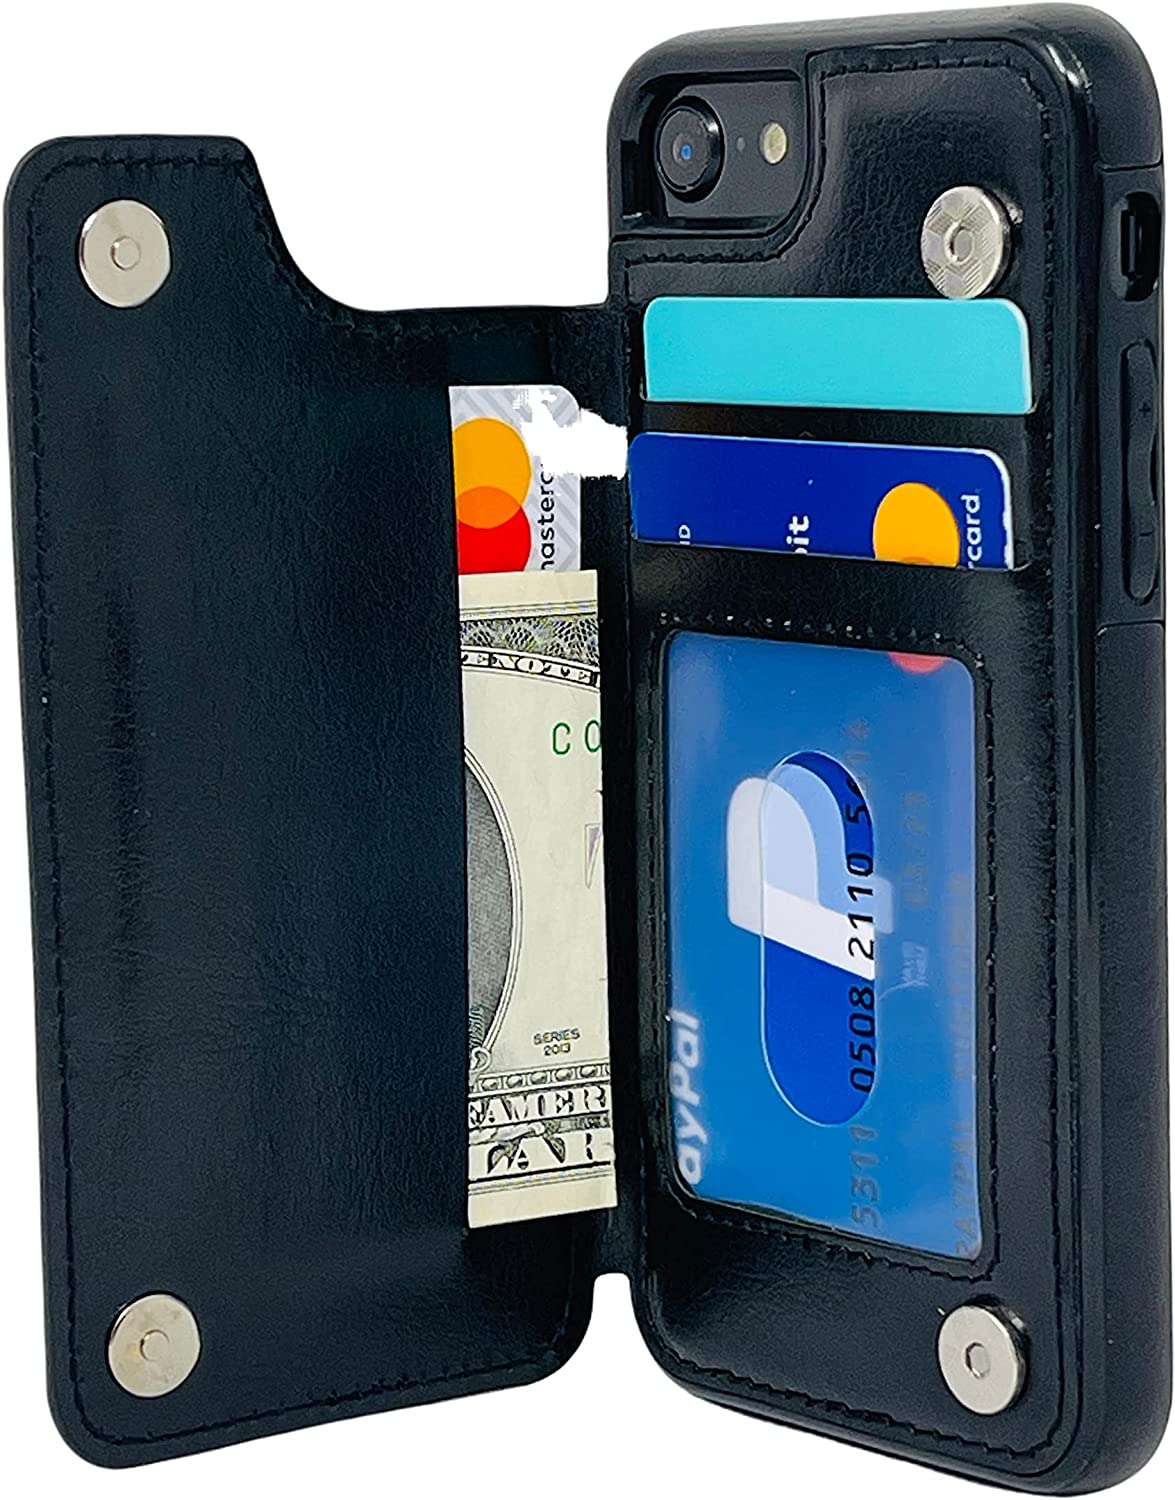 S-Tech Case for iPhone 7 Plus/iPhone 8 Plus (5.5 inch) Wallet Case with Card Holder Leather Kickstand Card Slots Case, Double Magnetic Clasp and Durable Shockproof Cover for Apple (Black)